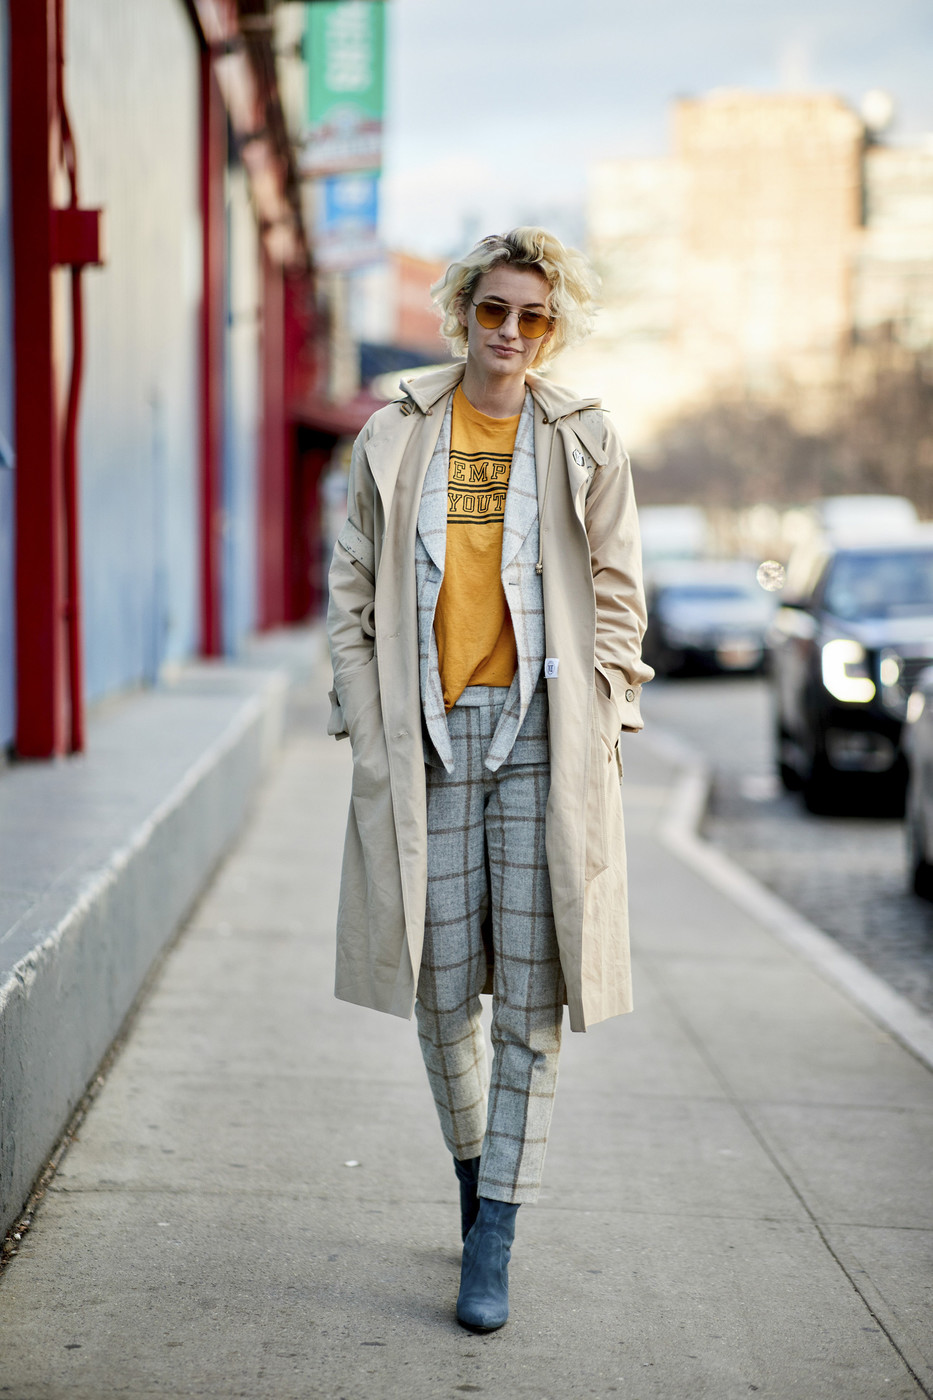 Grunge Chic Creative Winter Outfit Ideas From Nyfw Street Style Livingly